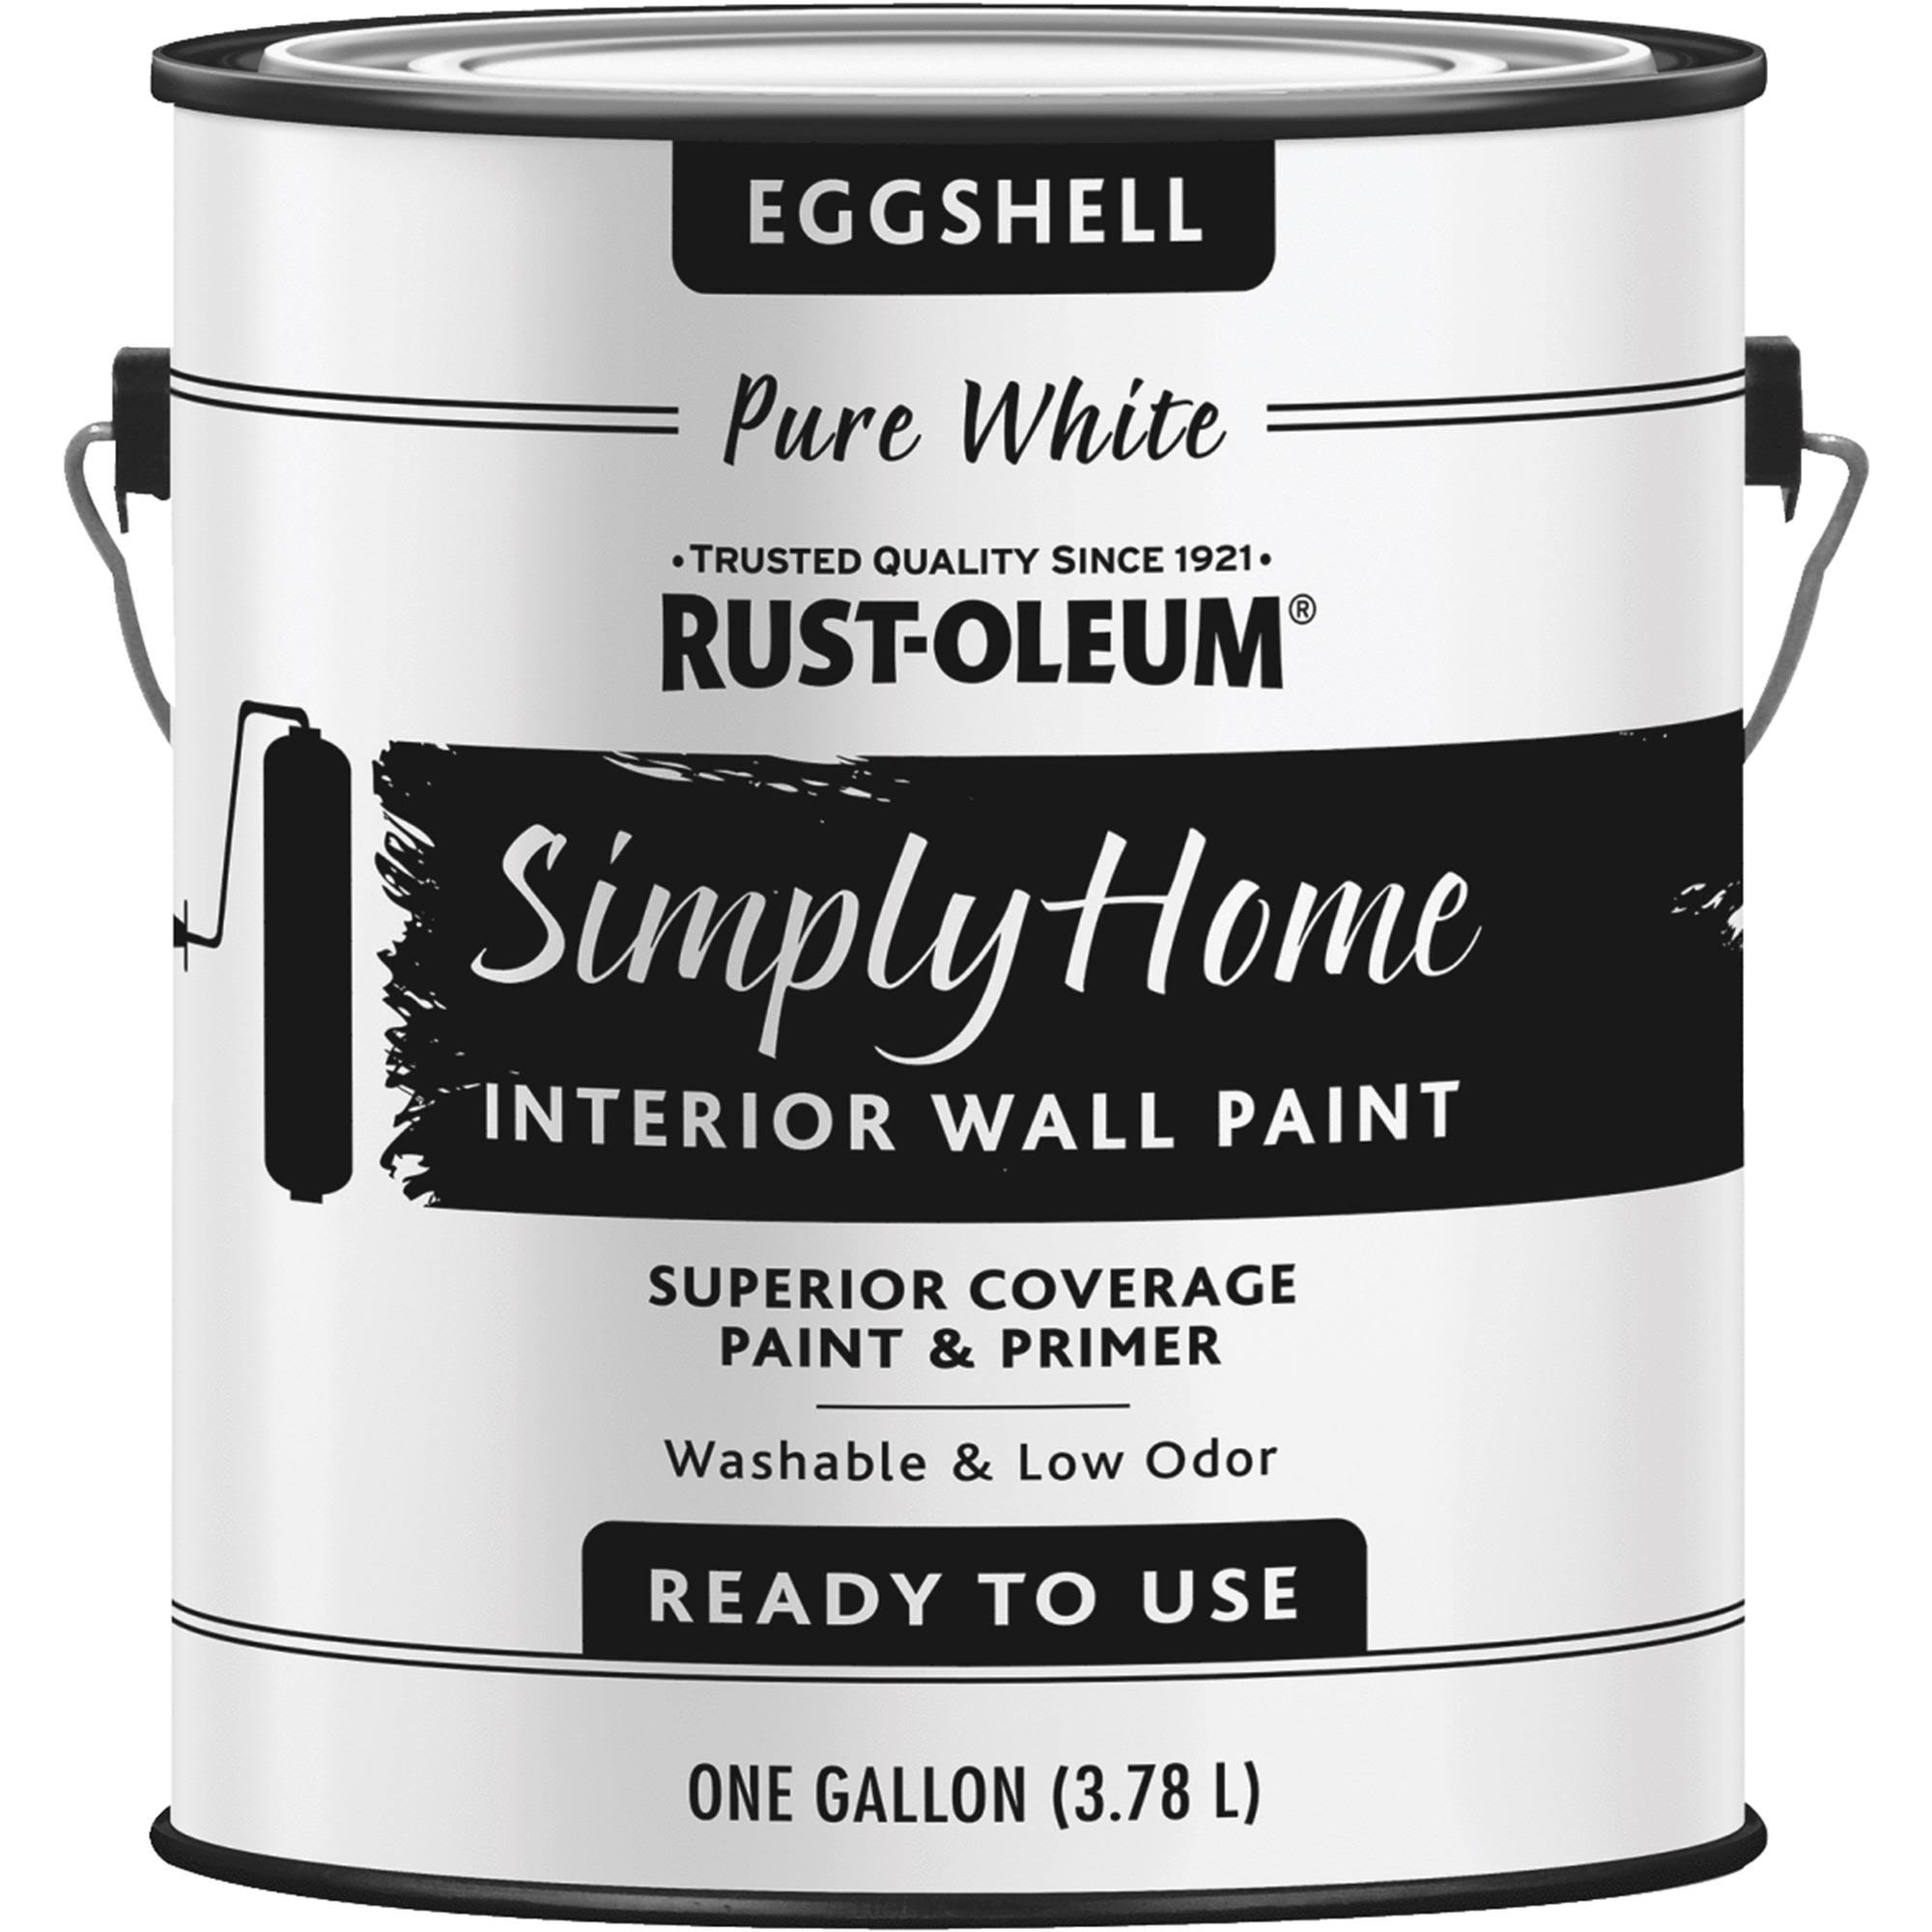 Rust-Oleum Simply Home Eggshell Interior Wall Paint - Pure White, 1gal